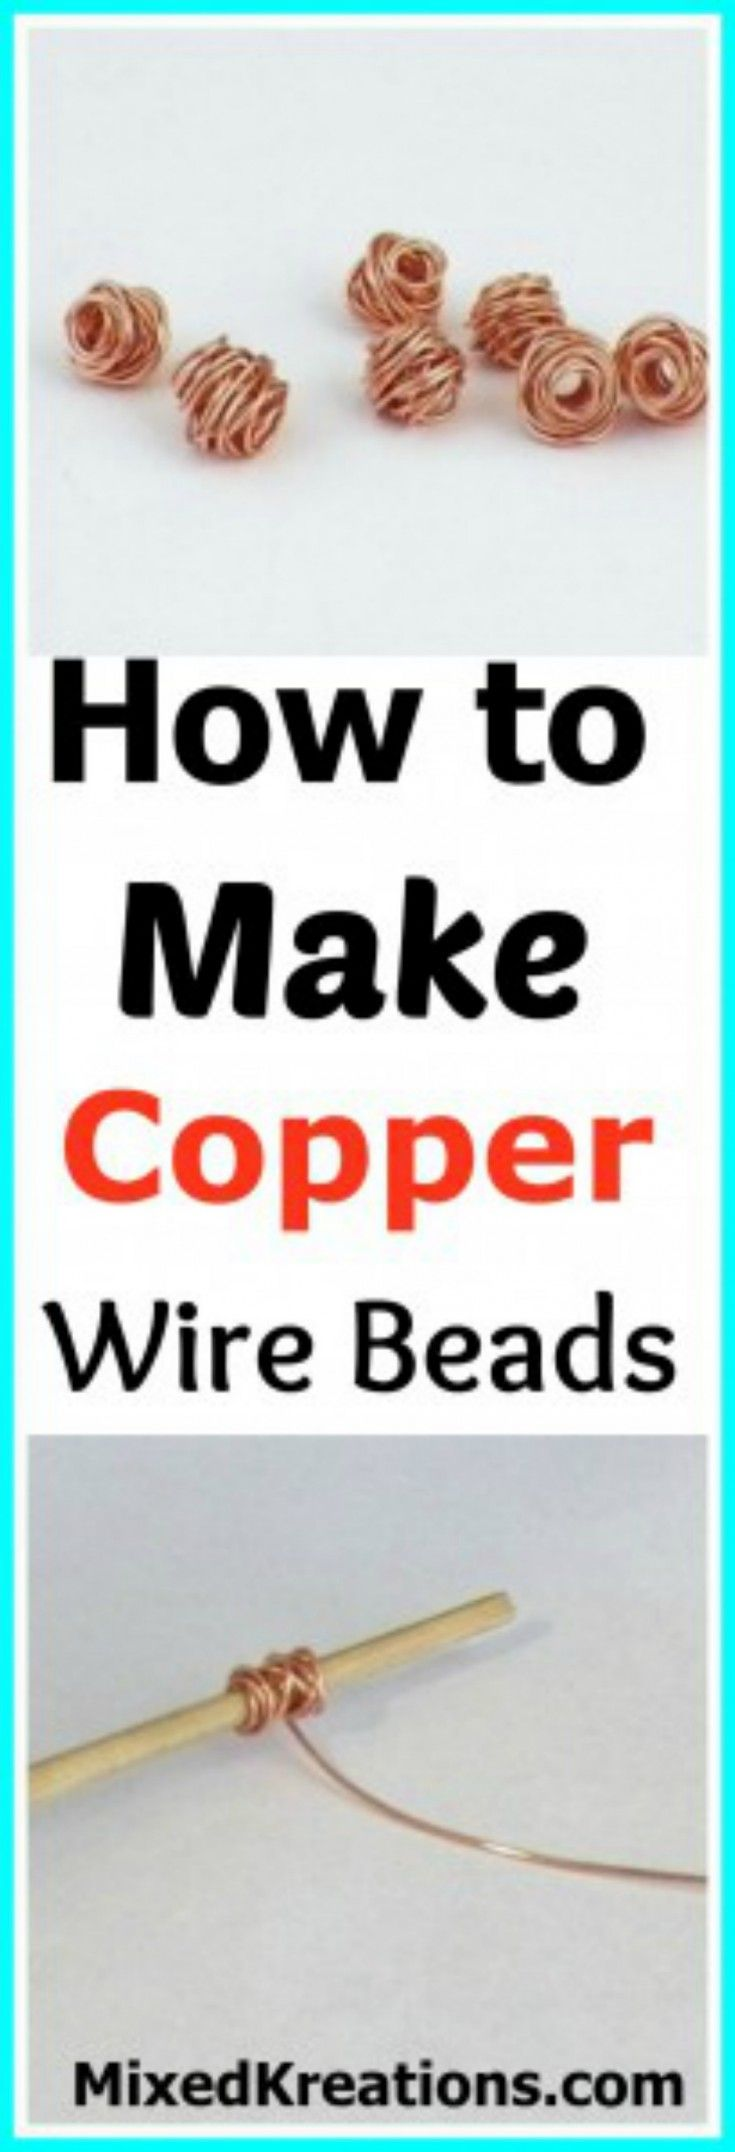 Stiff wire for crafts - How To Make Copper Wire Beads